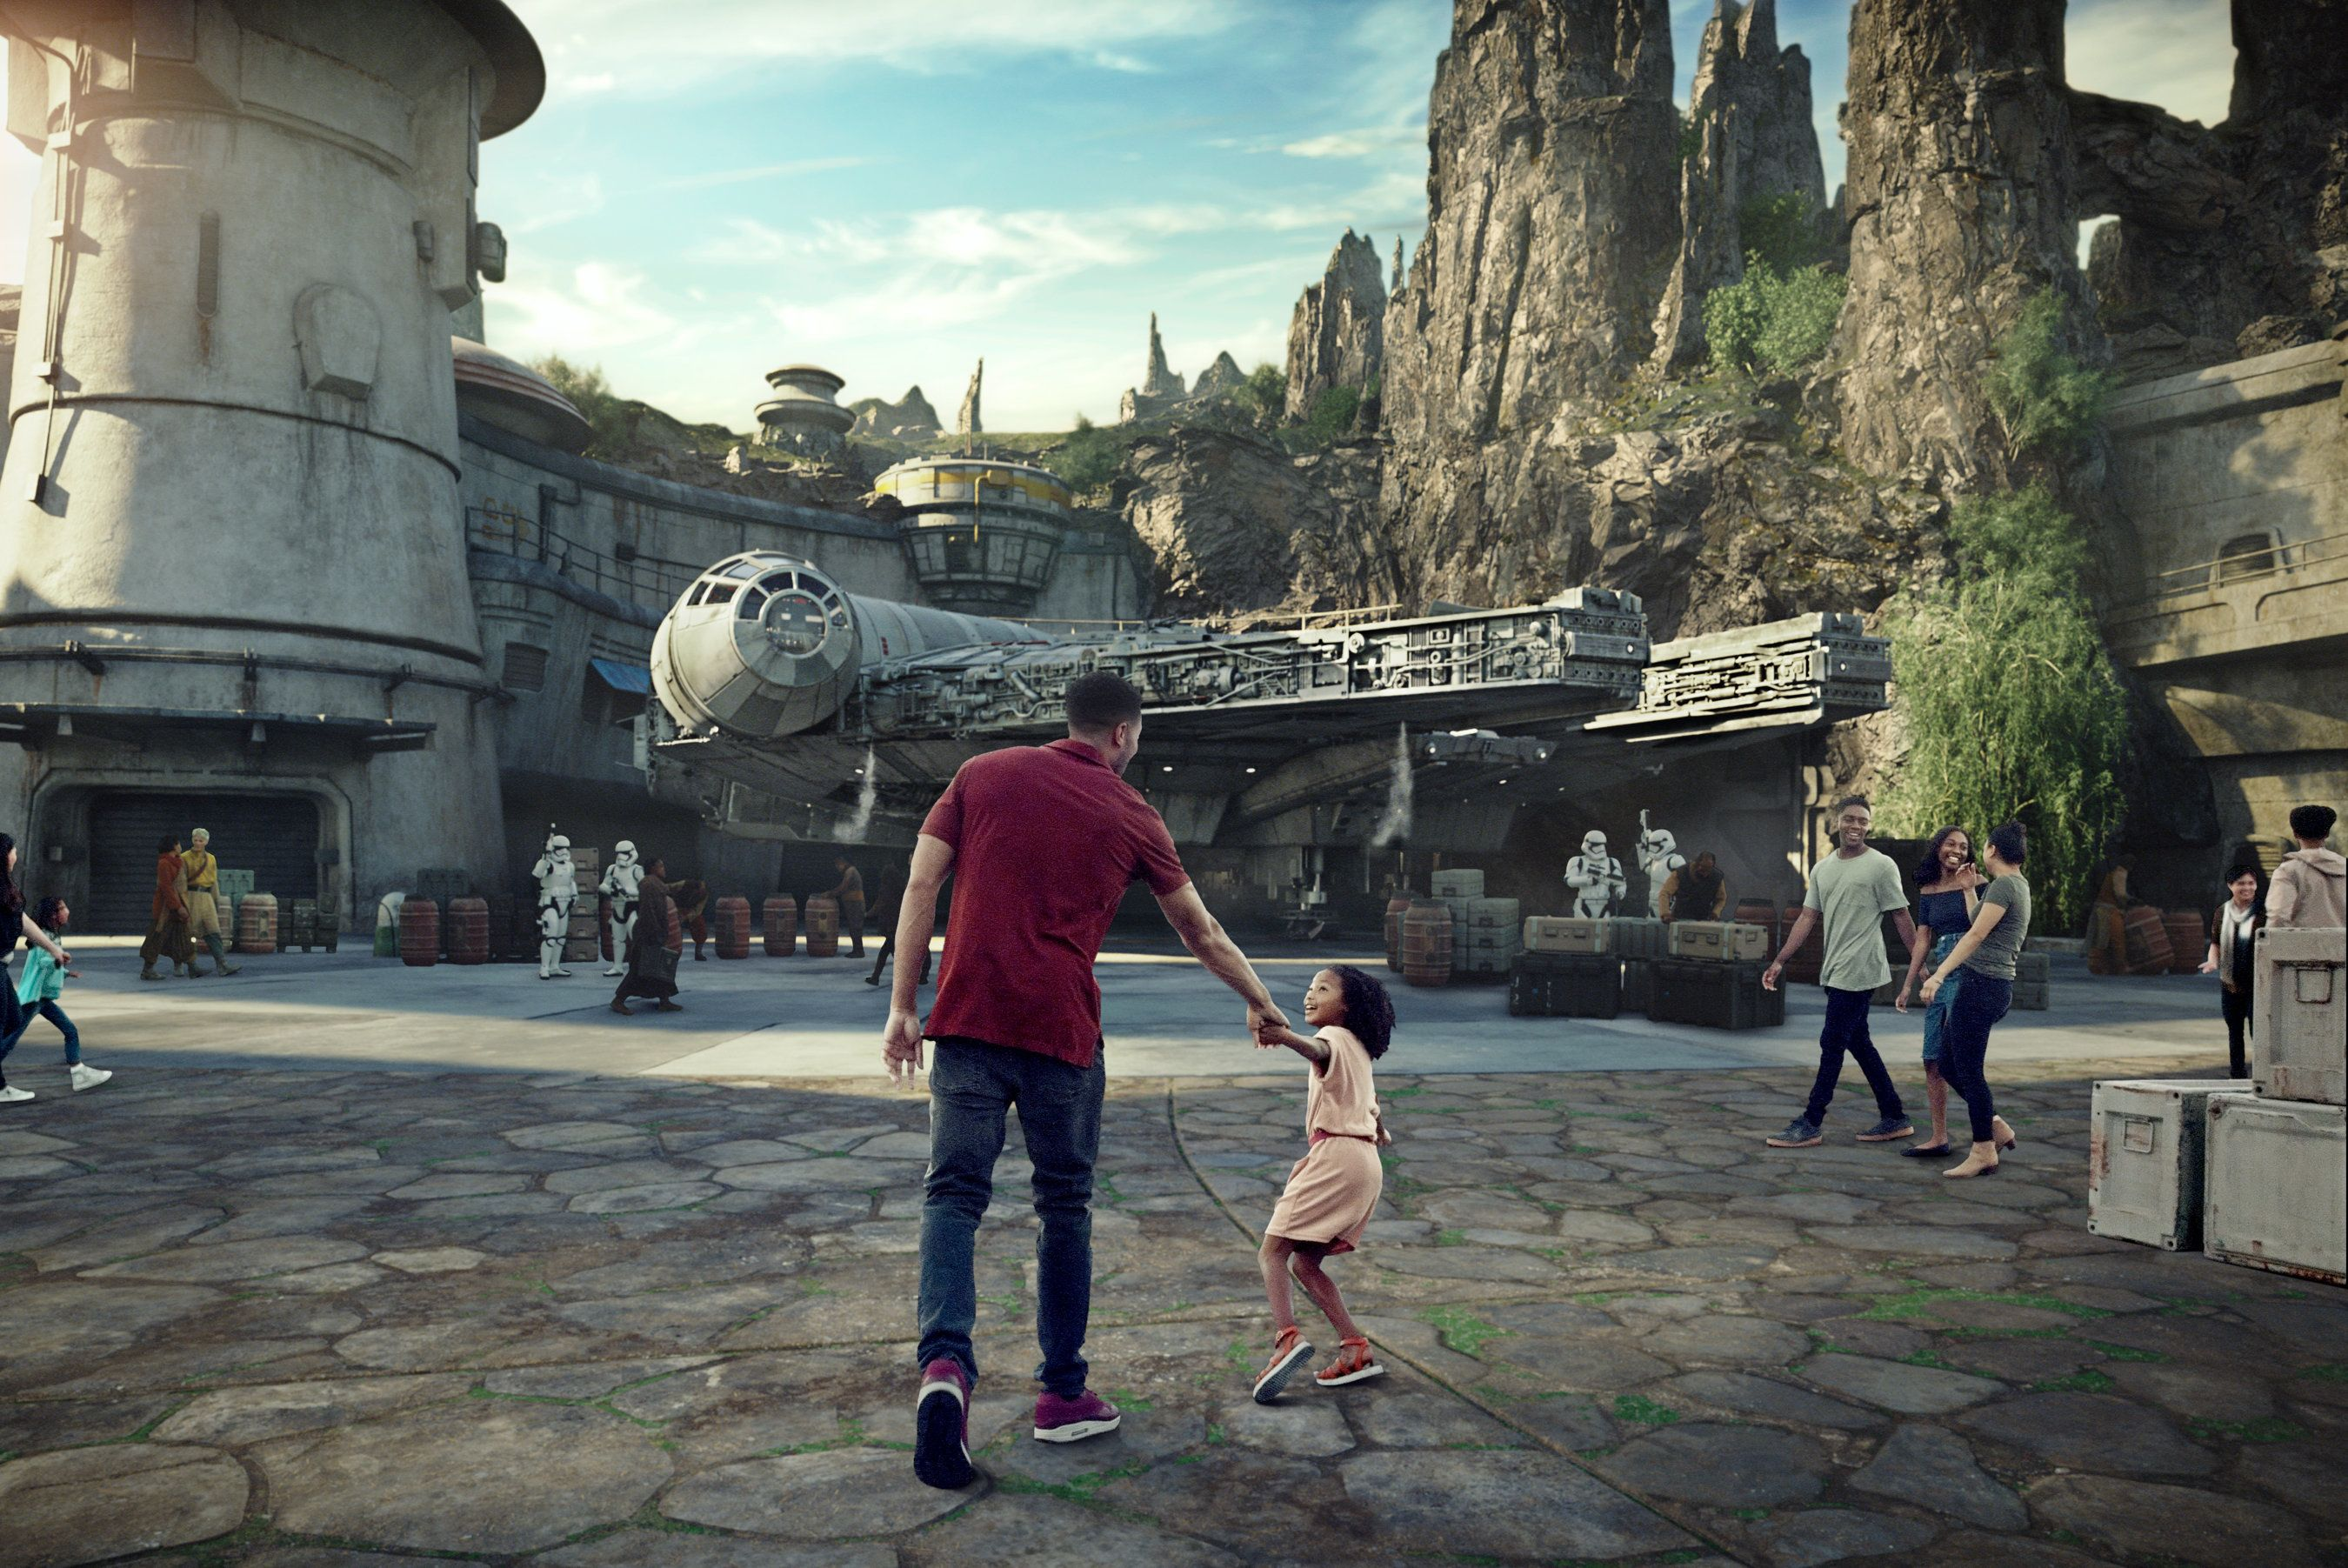 Disney's 'Star Wars: Galaxy's Edge' Theme Park Lands Will Open This Year